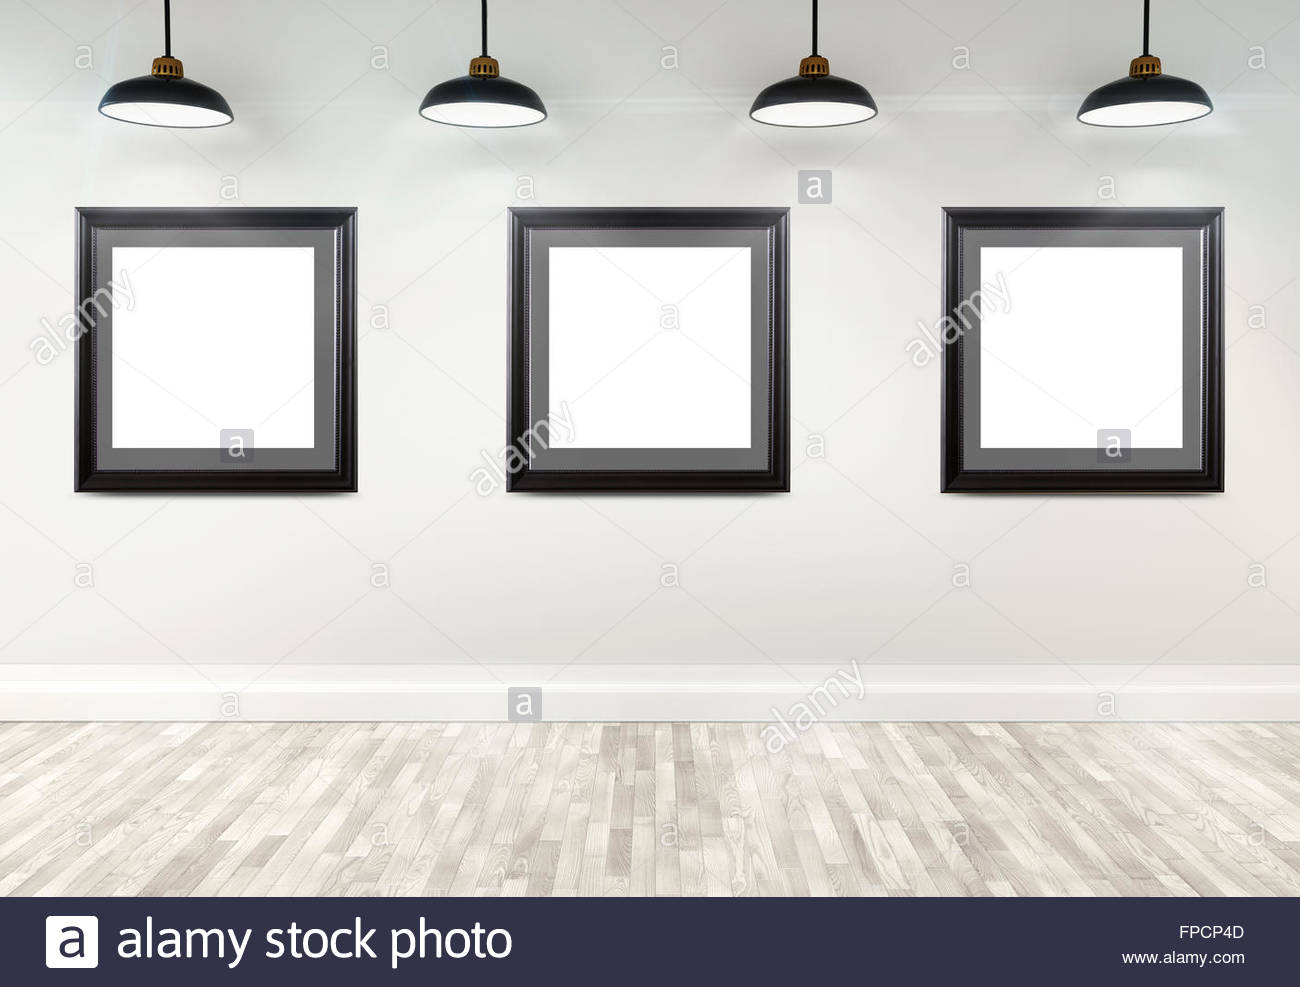 3d gallery interior with empty frames on wall - Empty Frames On Wall